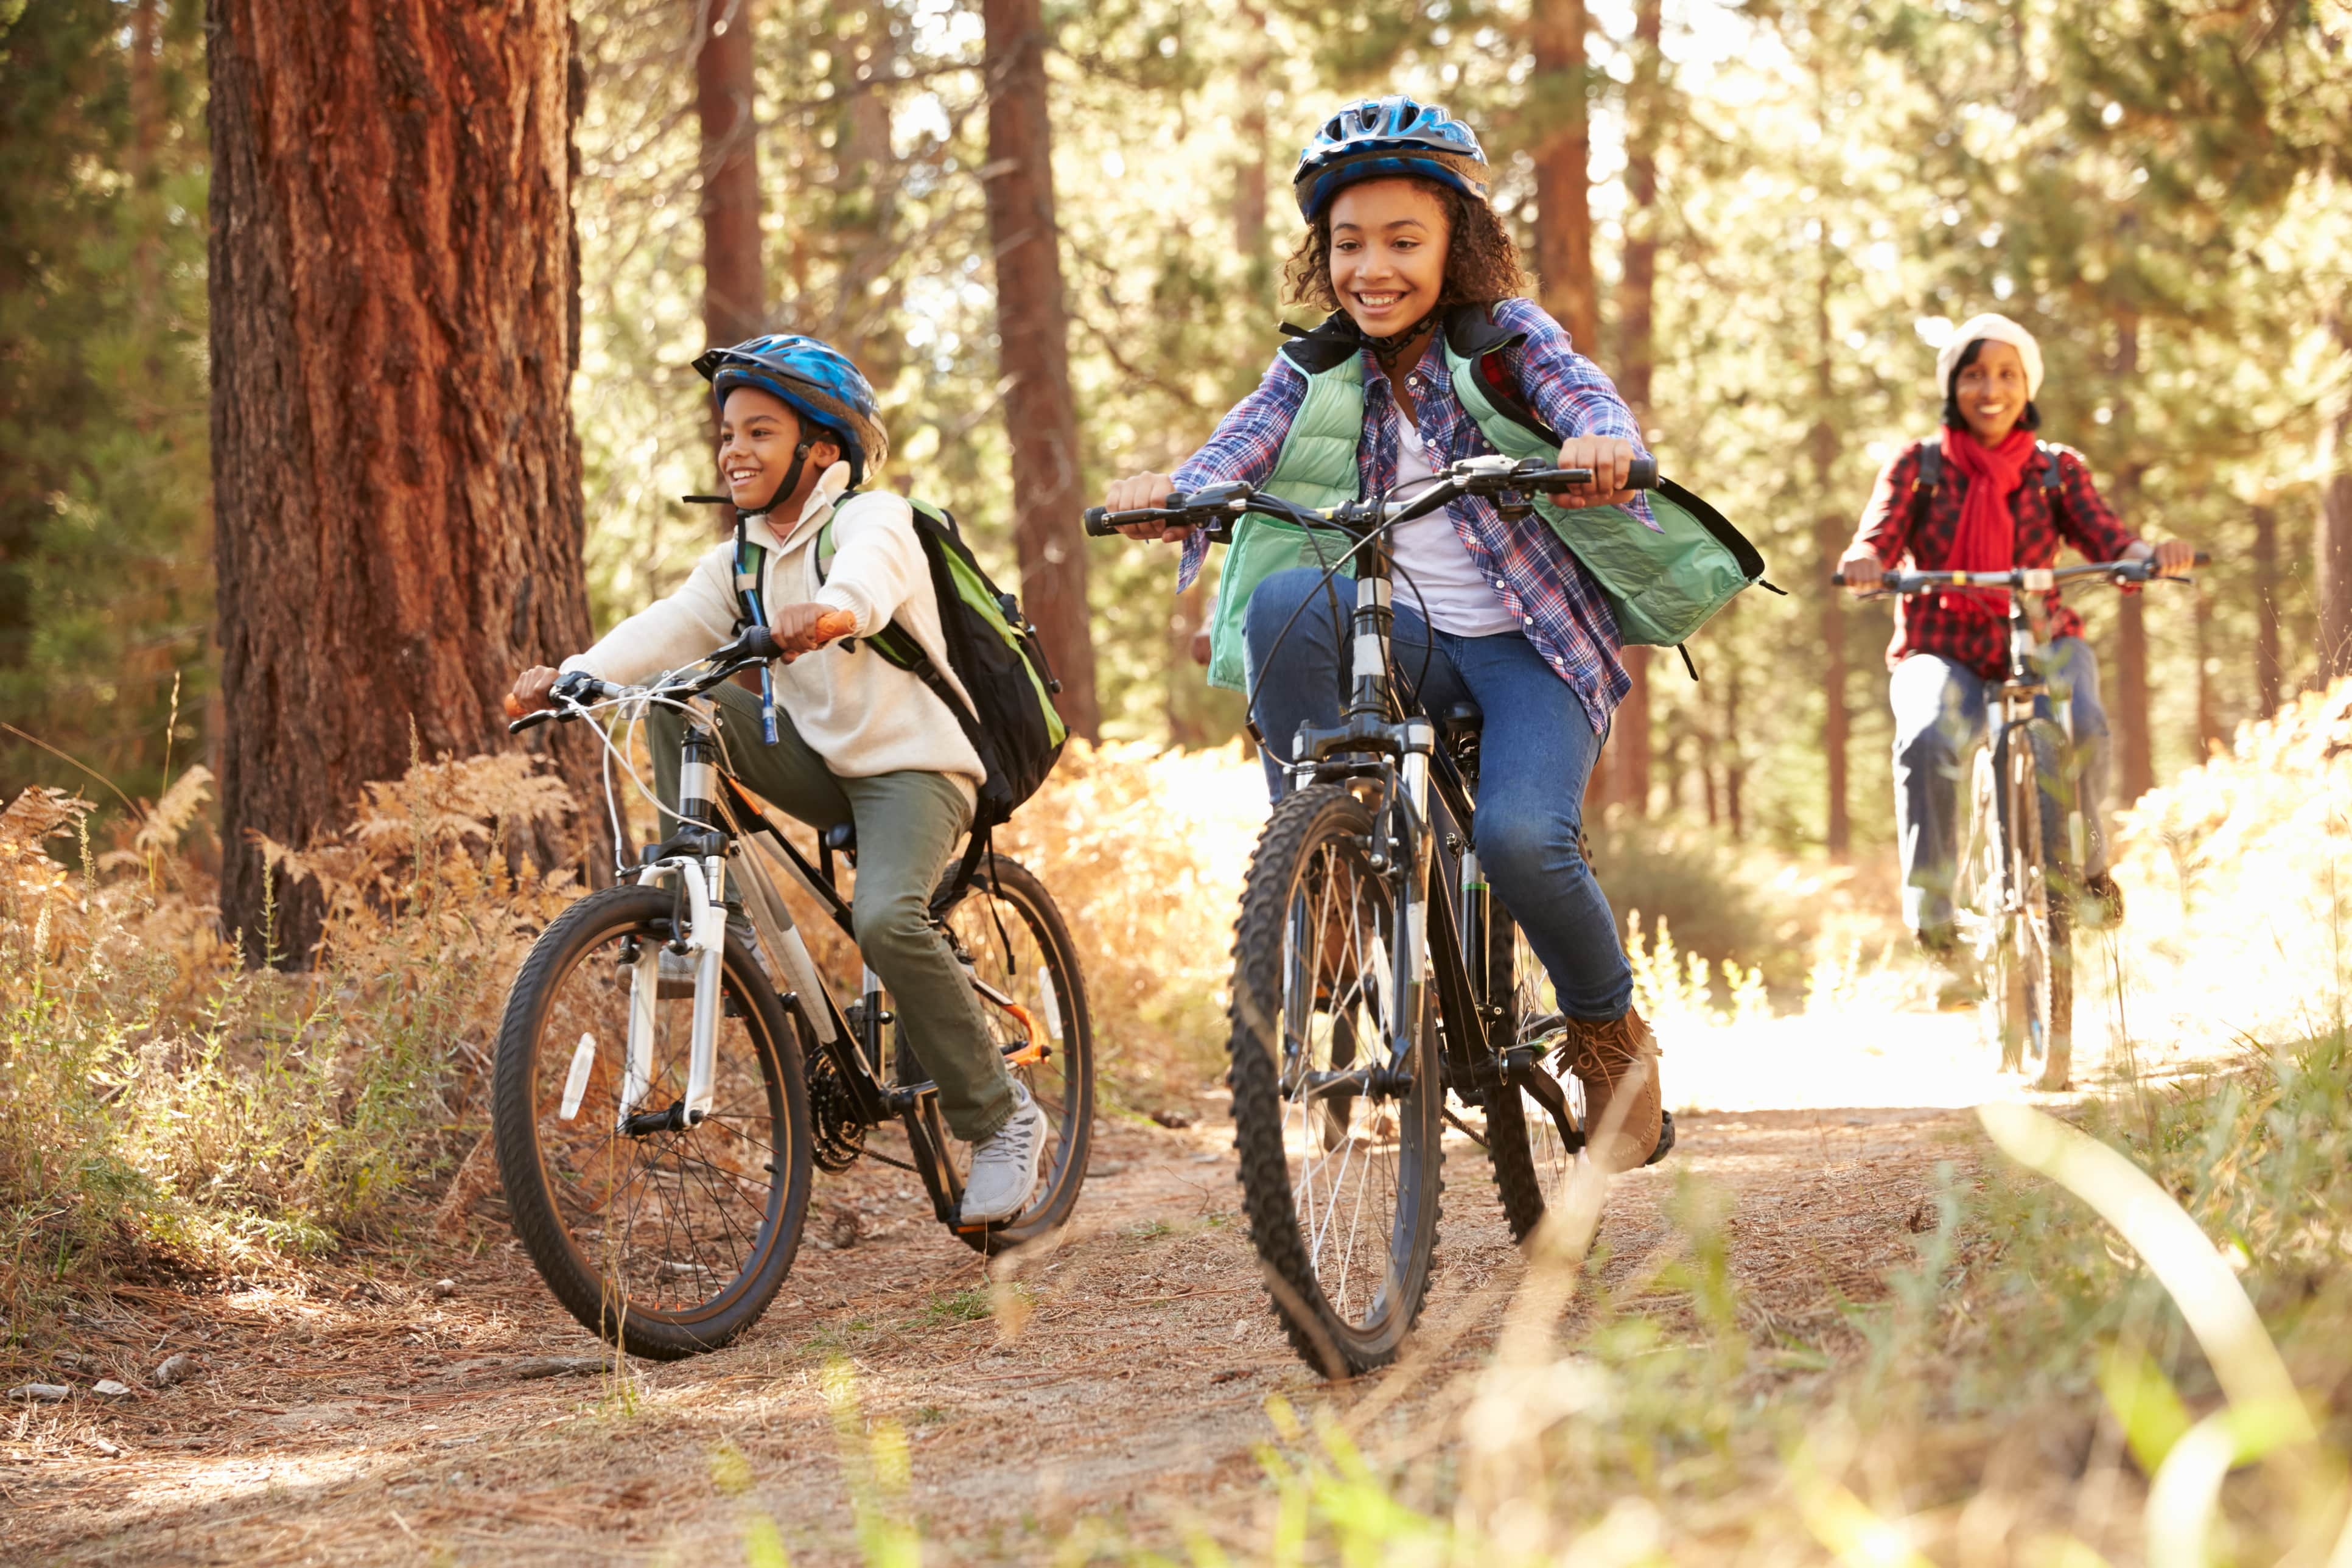 Group of people cycling recreationally